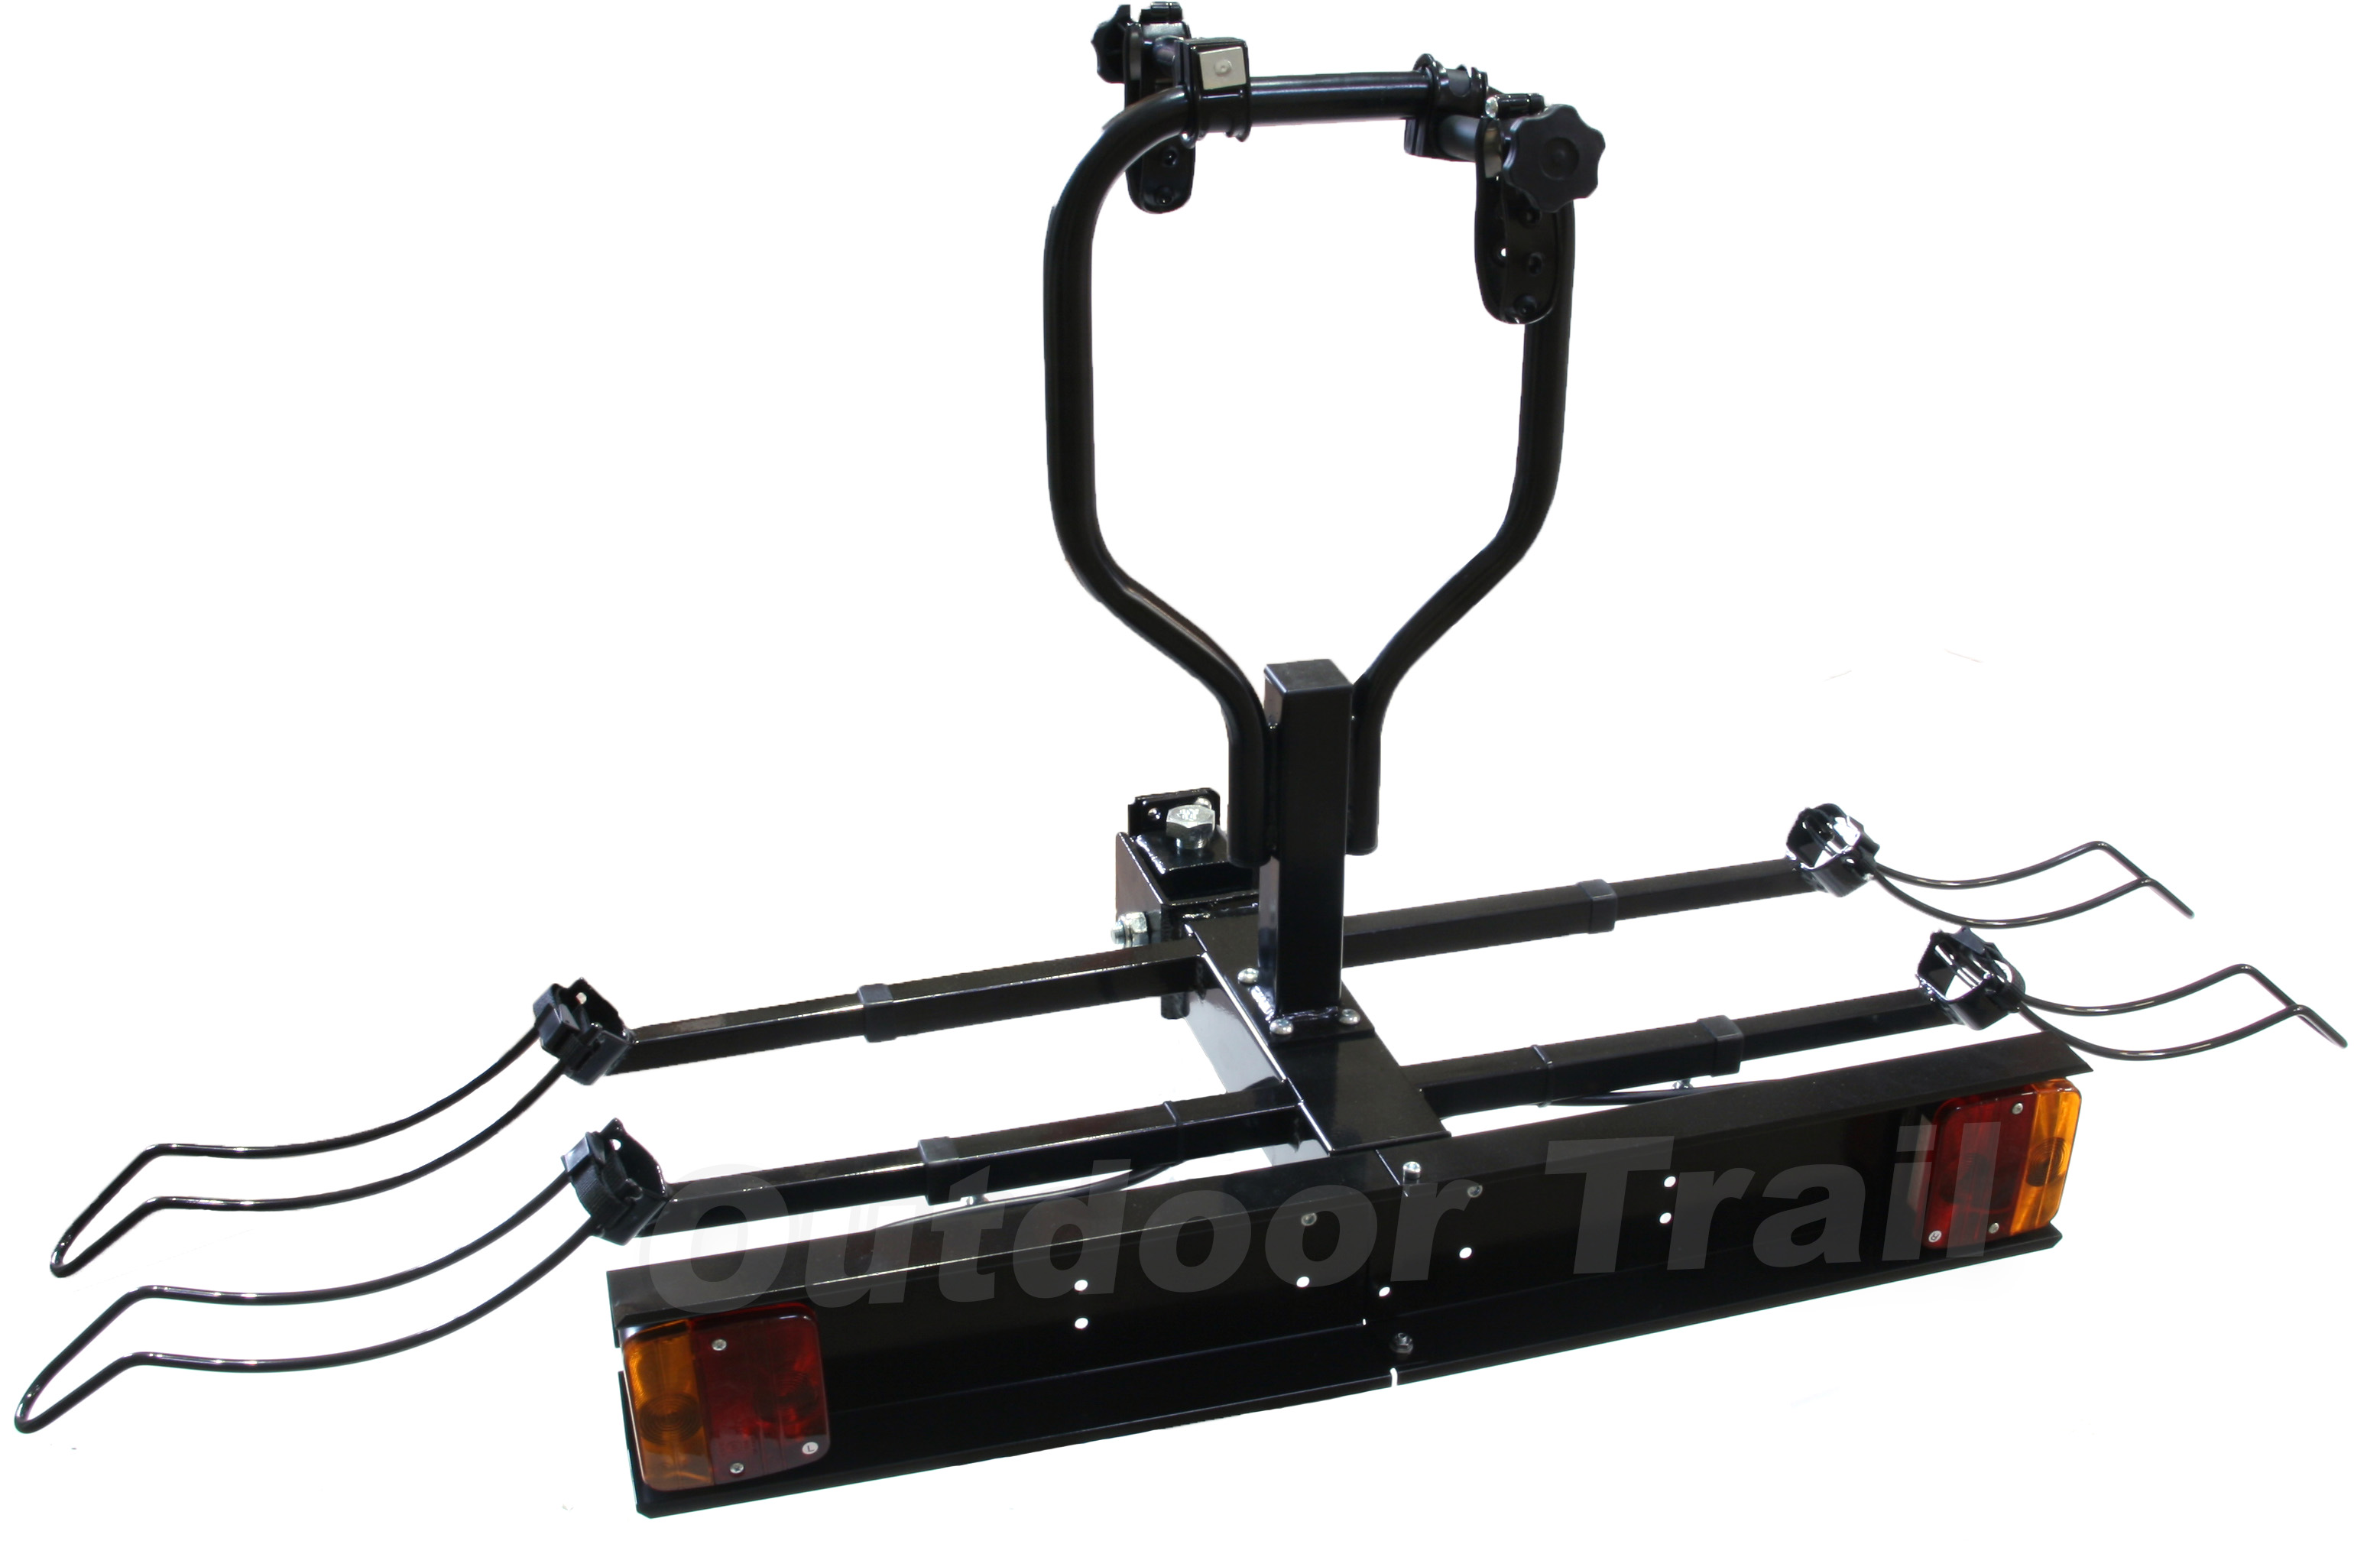 Towbar 2 Cycle Tiltable Bike Rack / Carrier With Lighting Board - Black